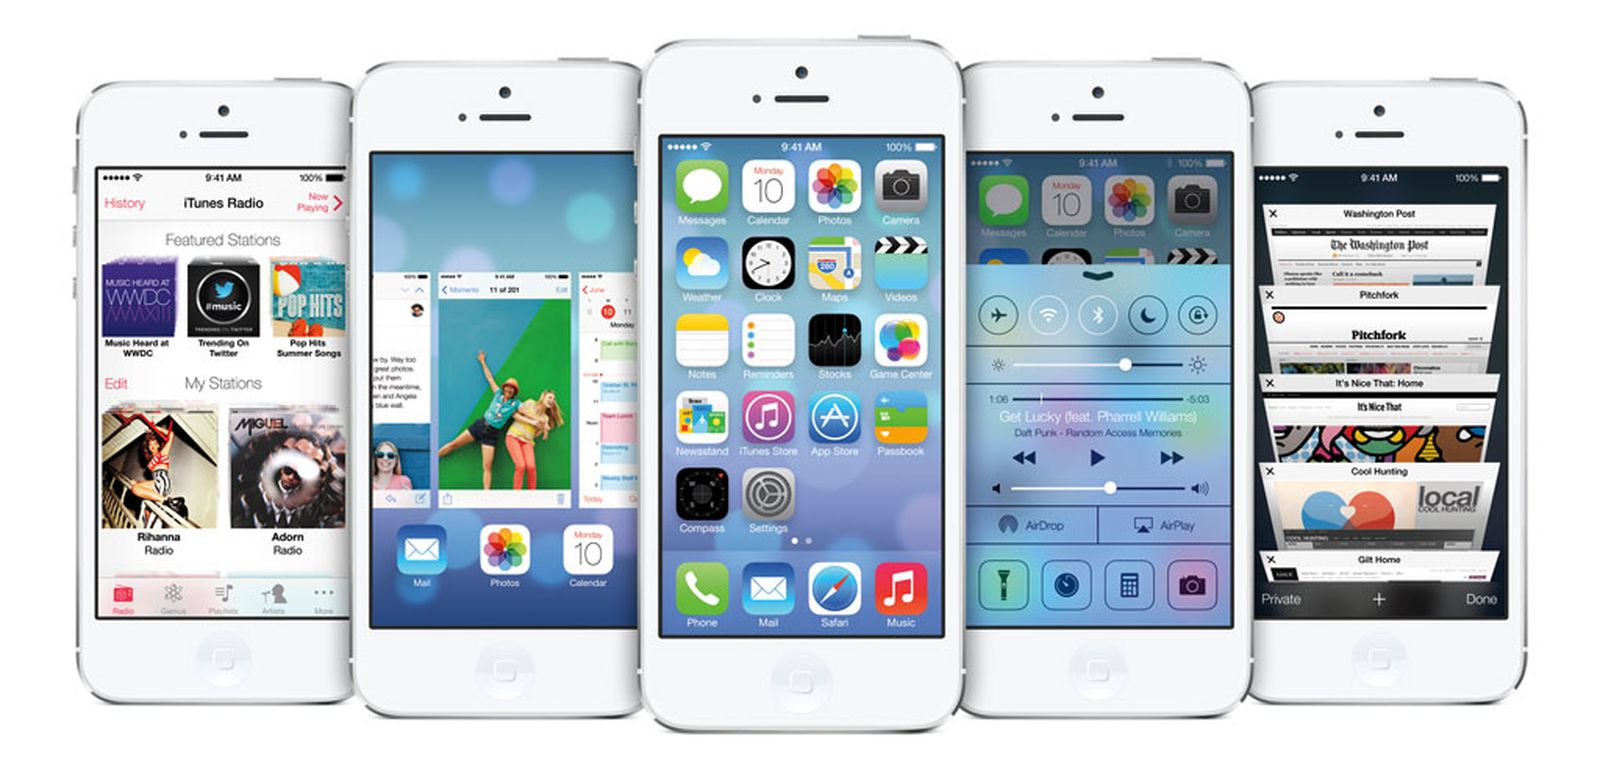 iOS 7 was an antidote to skeumorphism that went too far.